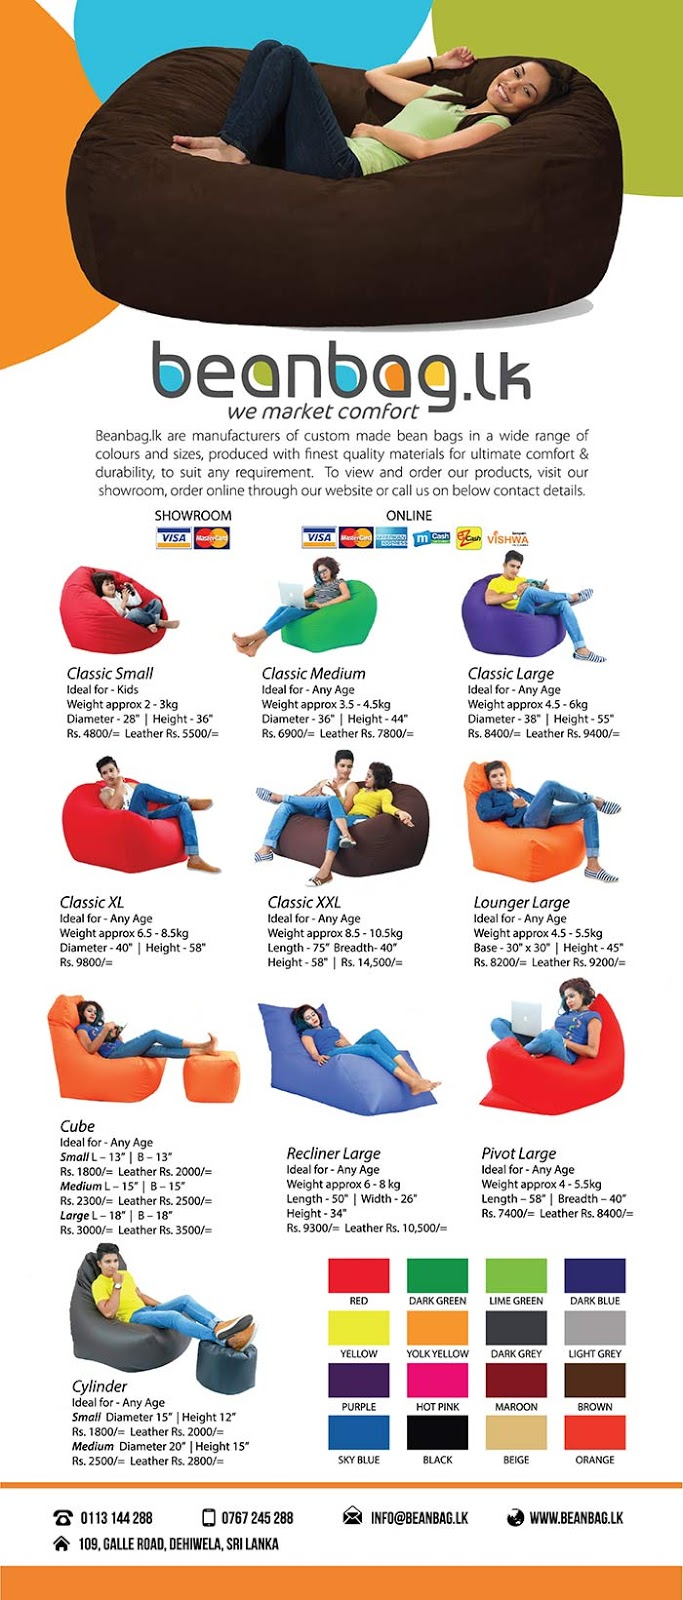 Comfortable beanbags from Beanbag.lk.